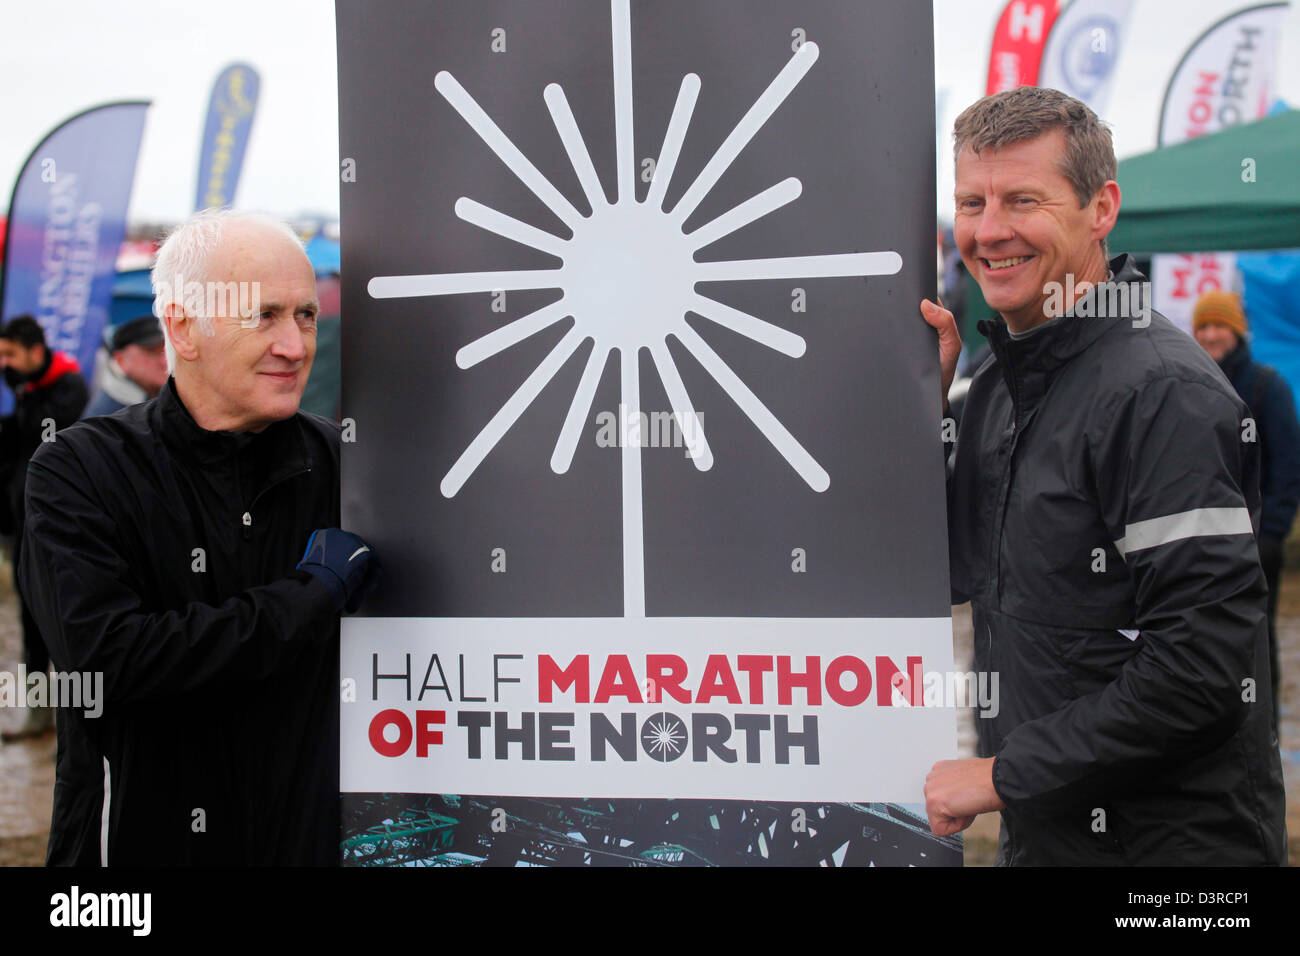 Terry Deary and Steve Cram publicise the Marathon of the North. They attend the 2013 National Cross Country Championships - Stock Image